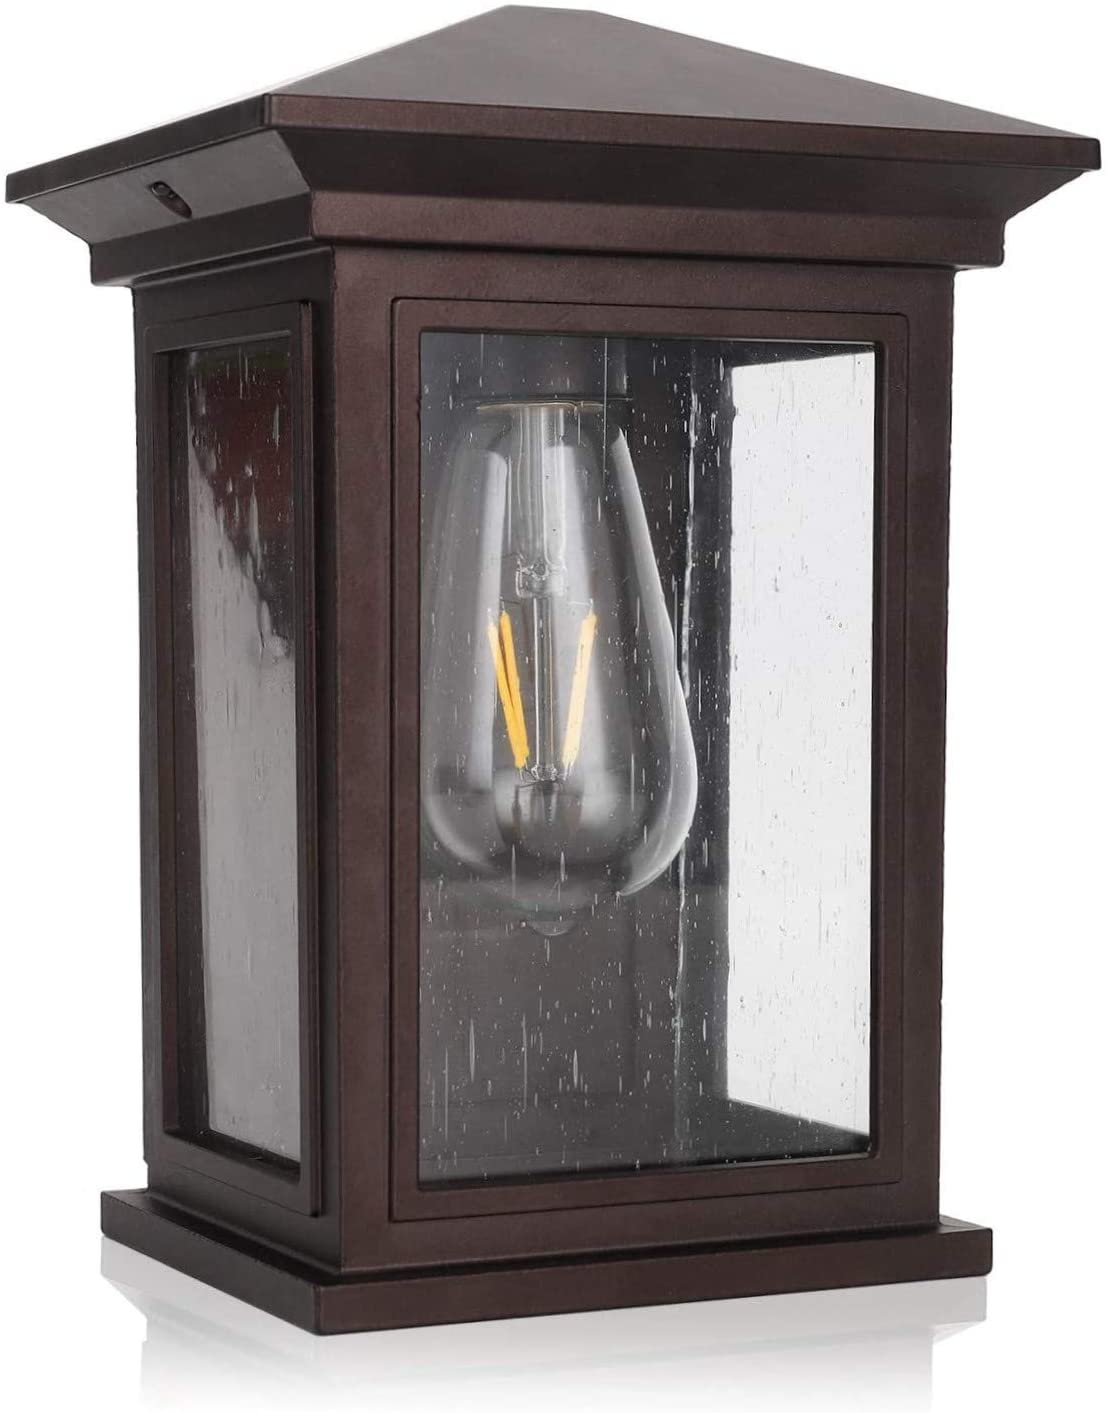 Outdoor Wall Lantern, Jetima Wall Sconce in Oil Rubbed Bronze (ORB) Finish with Clear Seeded Glass, Architectural Wall Sconce Shade for Entryway, Porch, Doorway